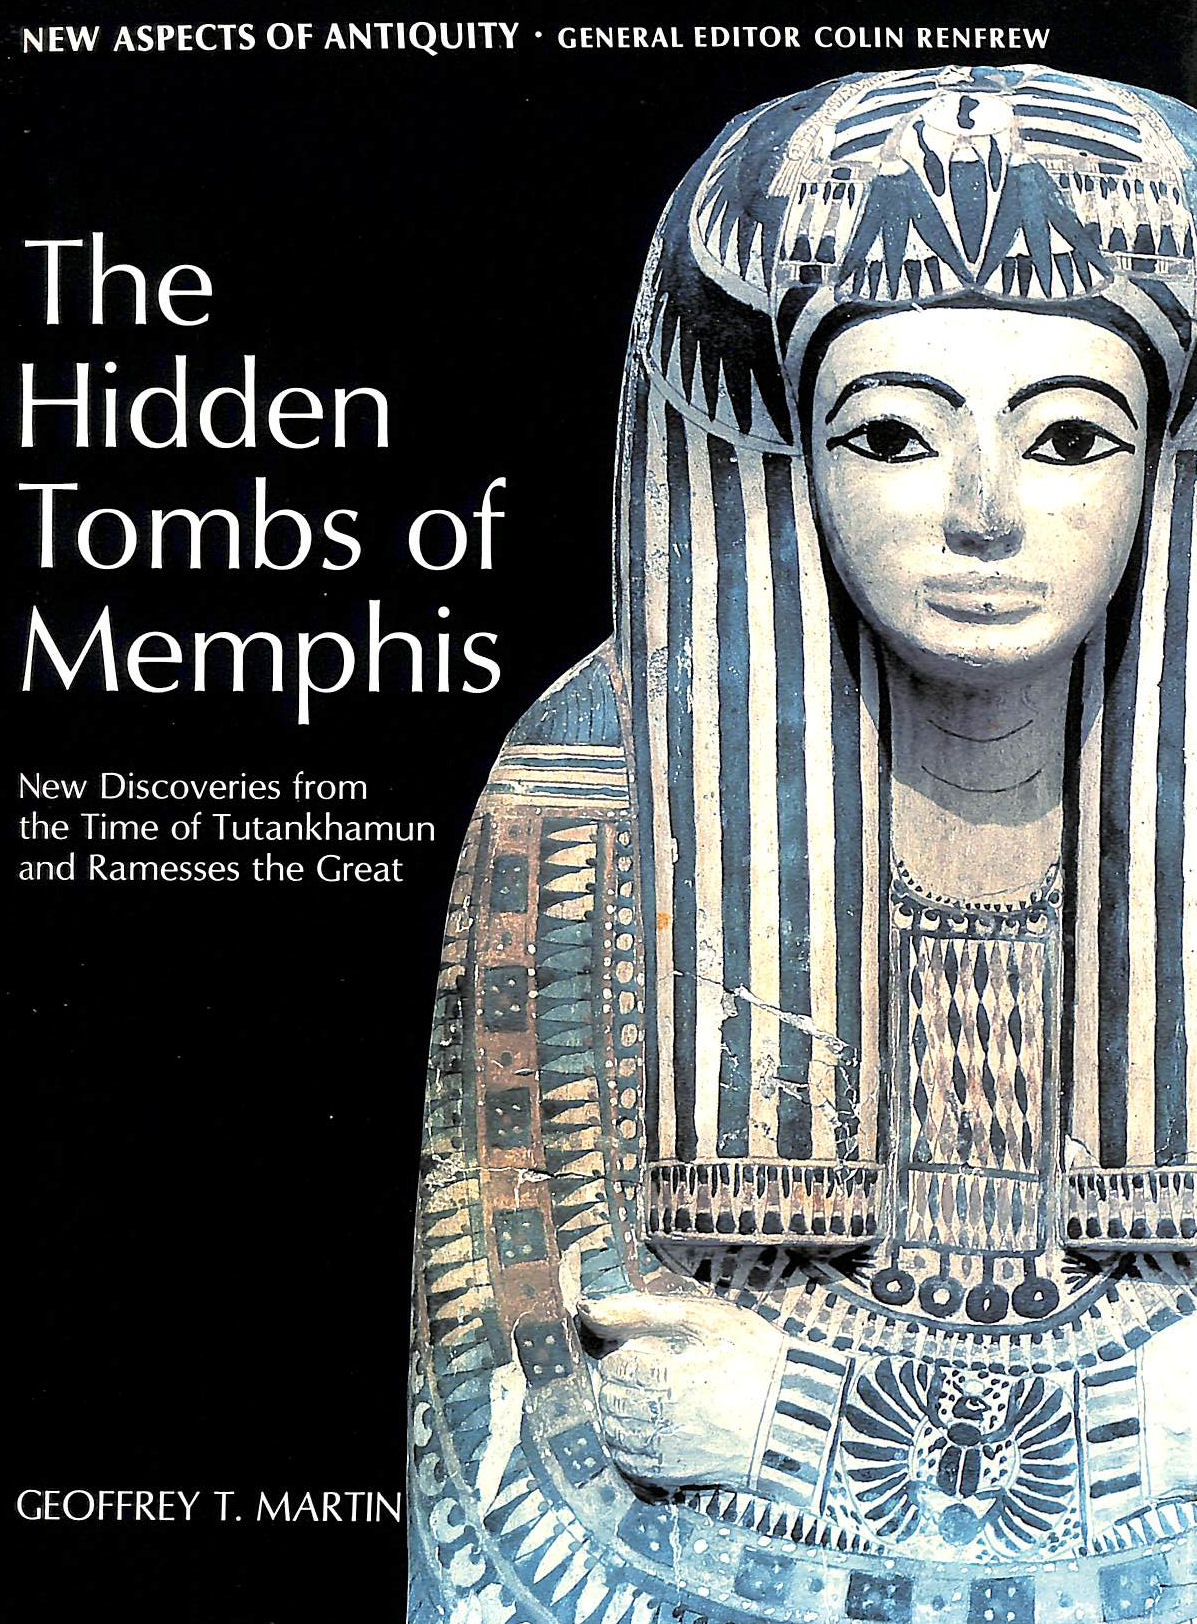 Image for The Hidden Tombs of Memphis: New Discoveries from the Time of Tutankhamun and Ramesses the Great (New Aspects of Antiquity)